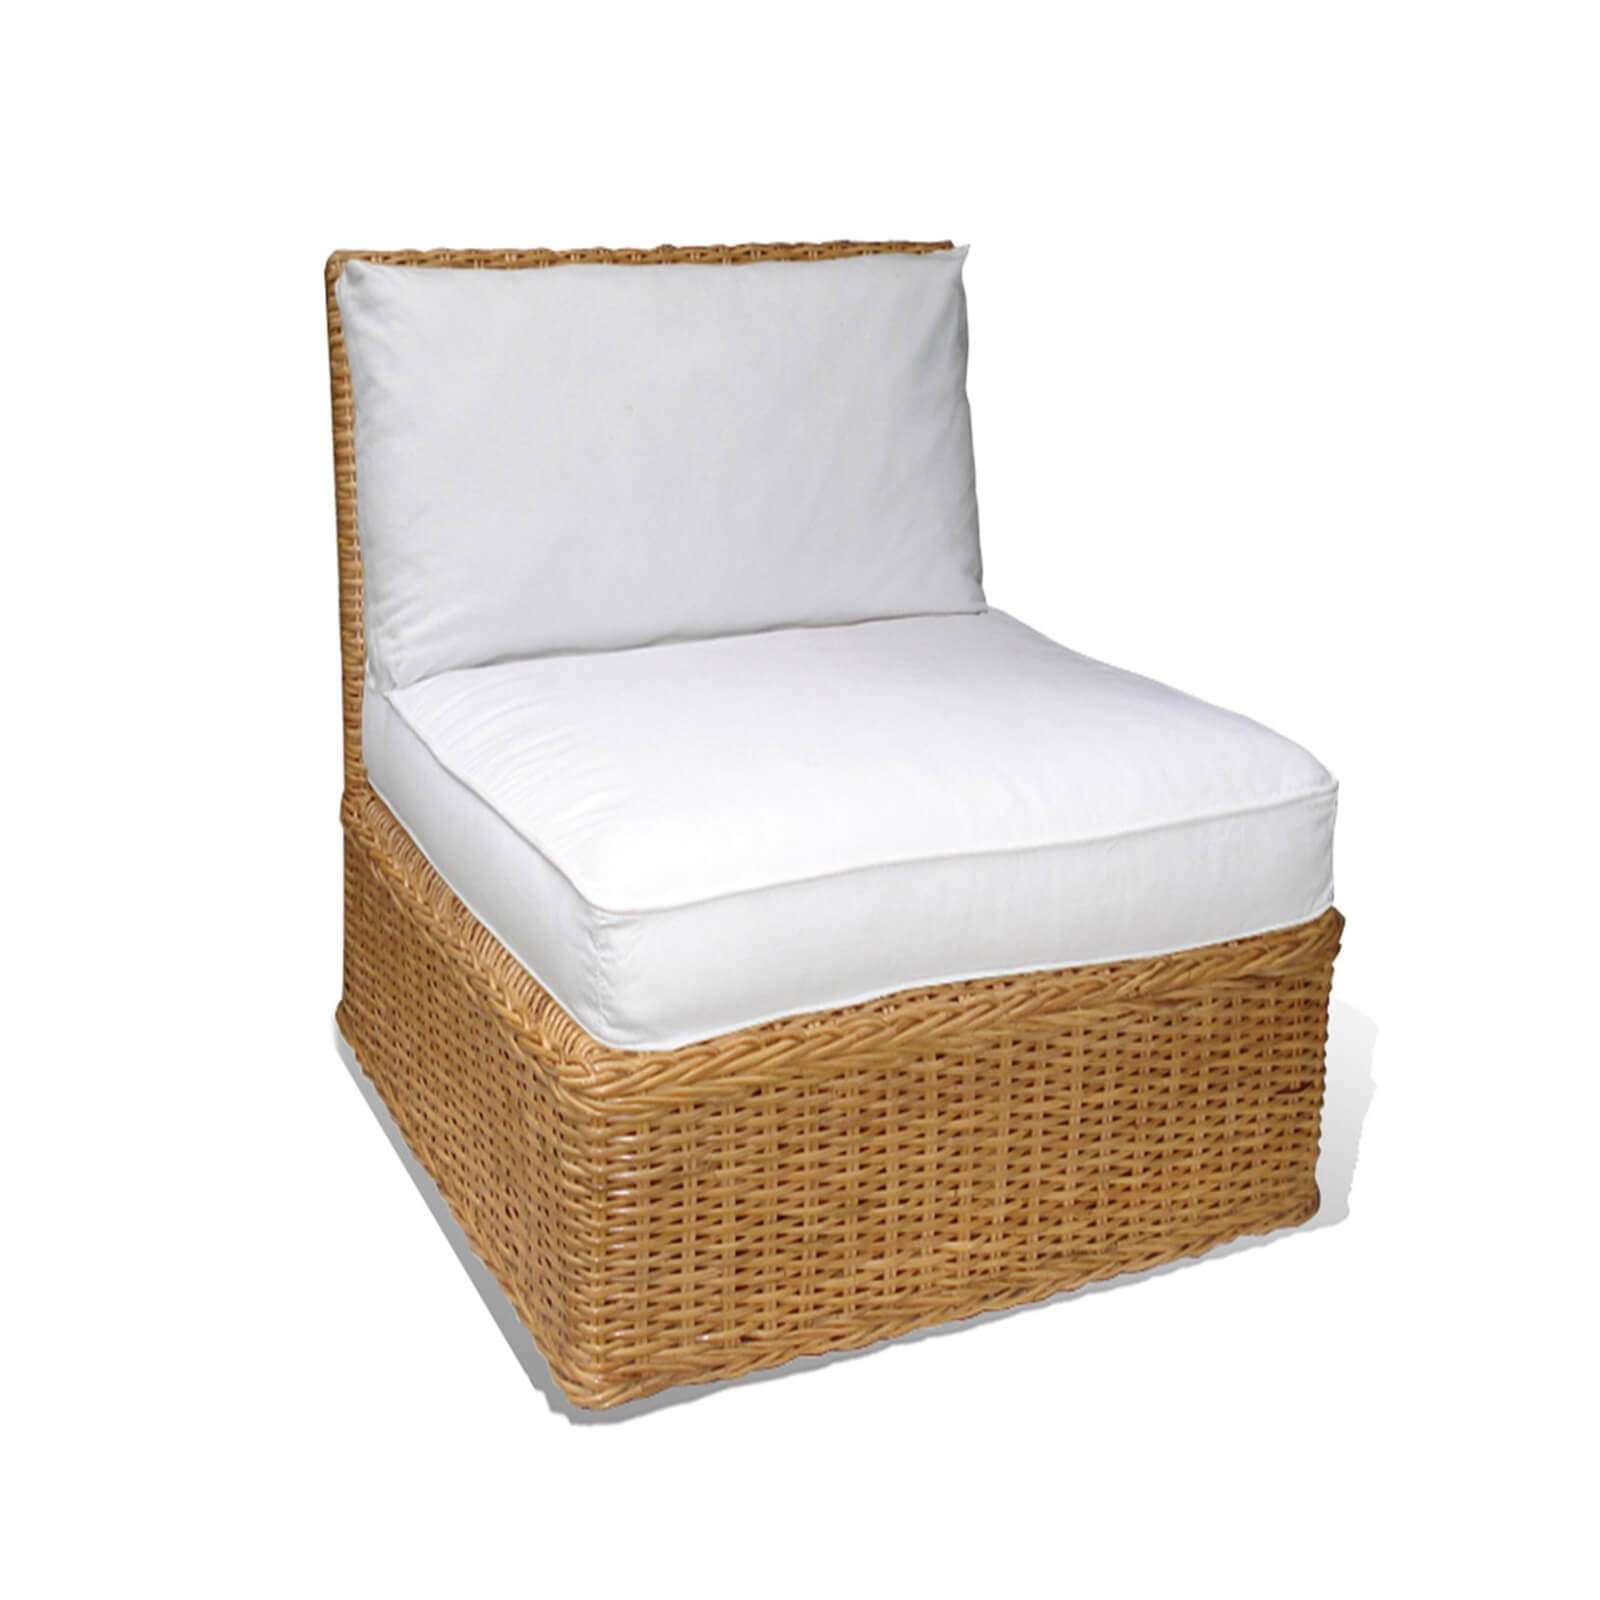 WICKER SLIPPER CHAIR 1 - STUART MEMBERY HOME COLLECTION